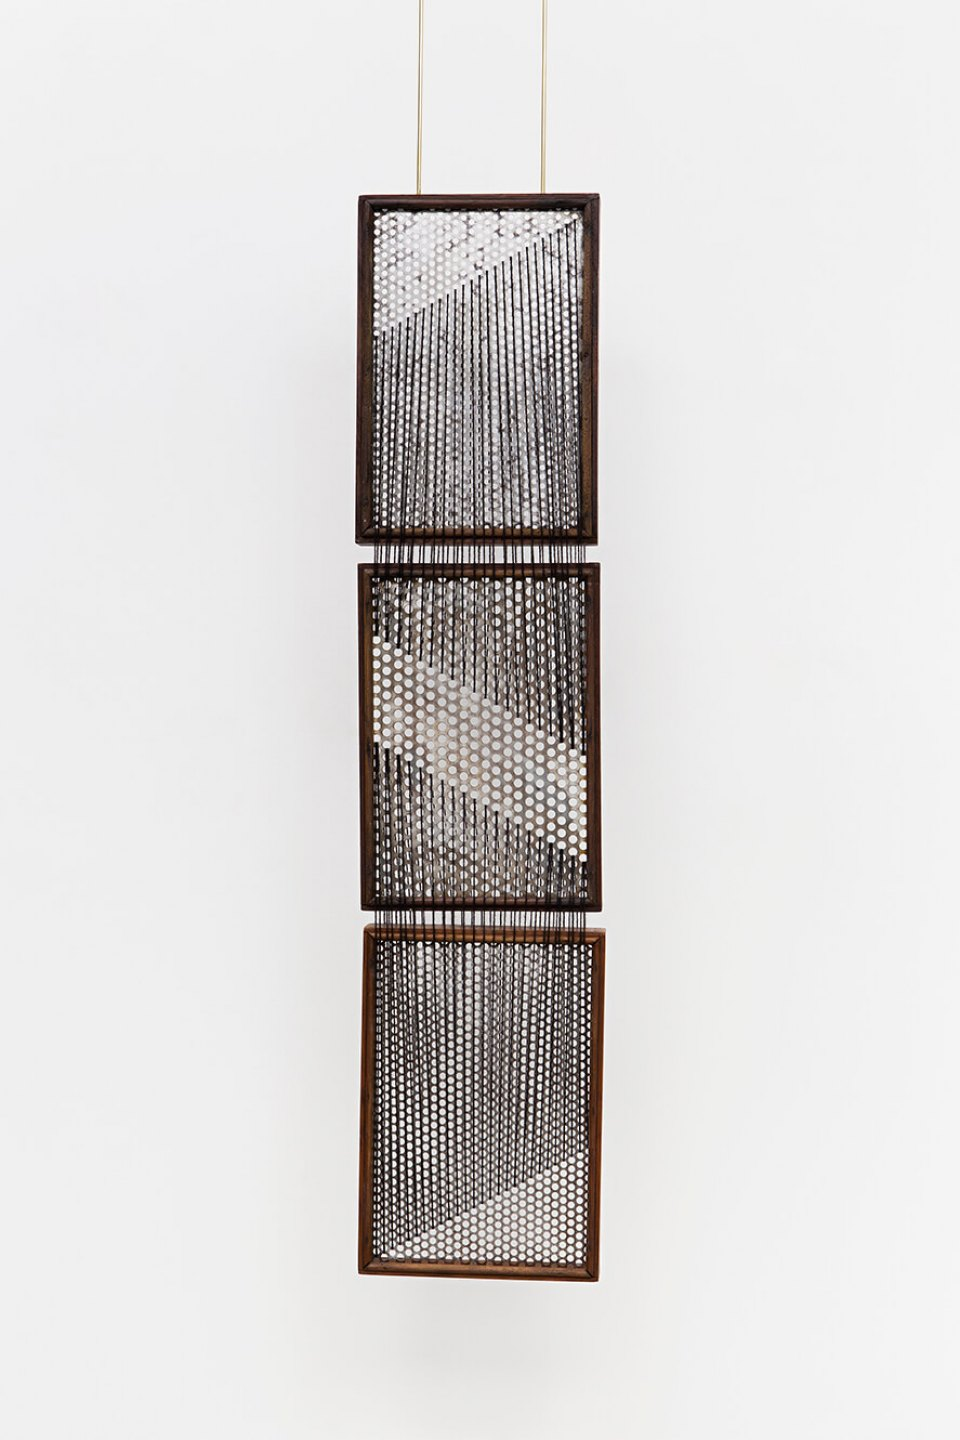 Paloma Bosquê, <em>On provisory interaction (geometry of relations #1</em>), 2015, coffee sieve, wool and brass rods, 194,7 × 21 cm - Mendes Wood DM